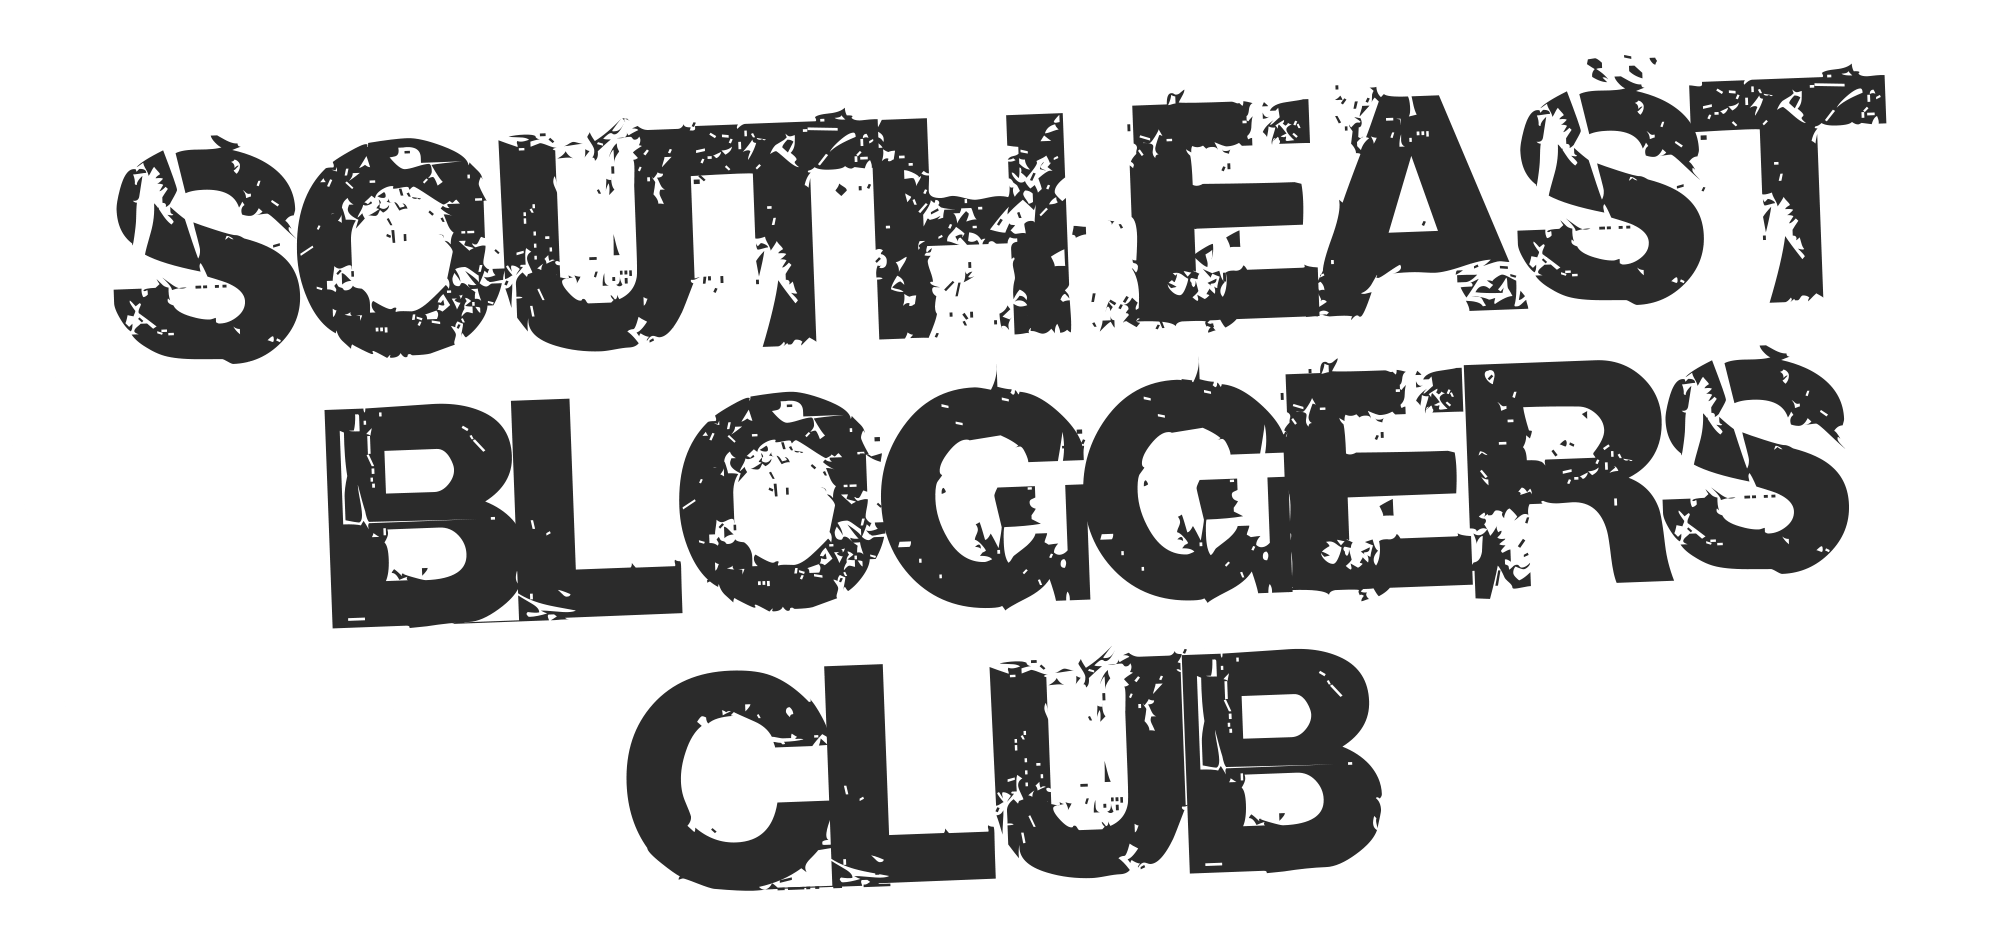 south east bloggers logo